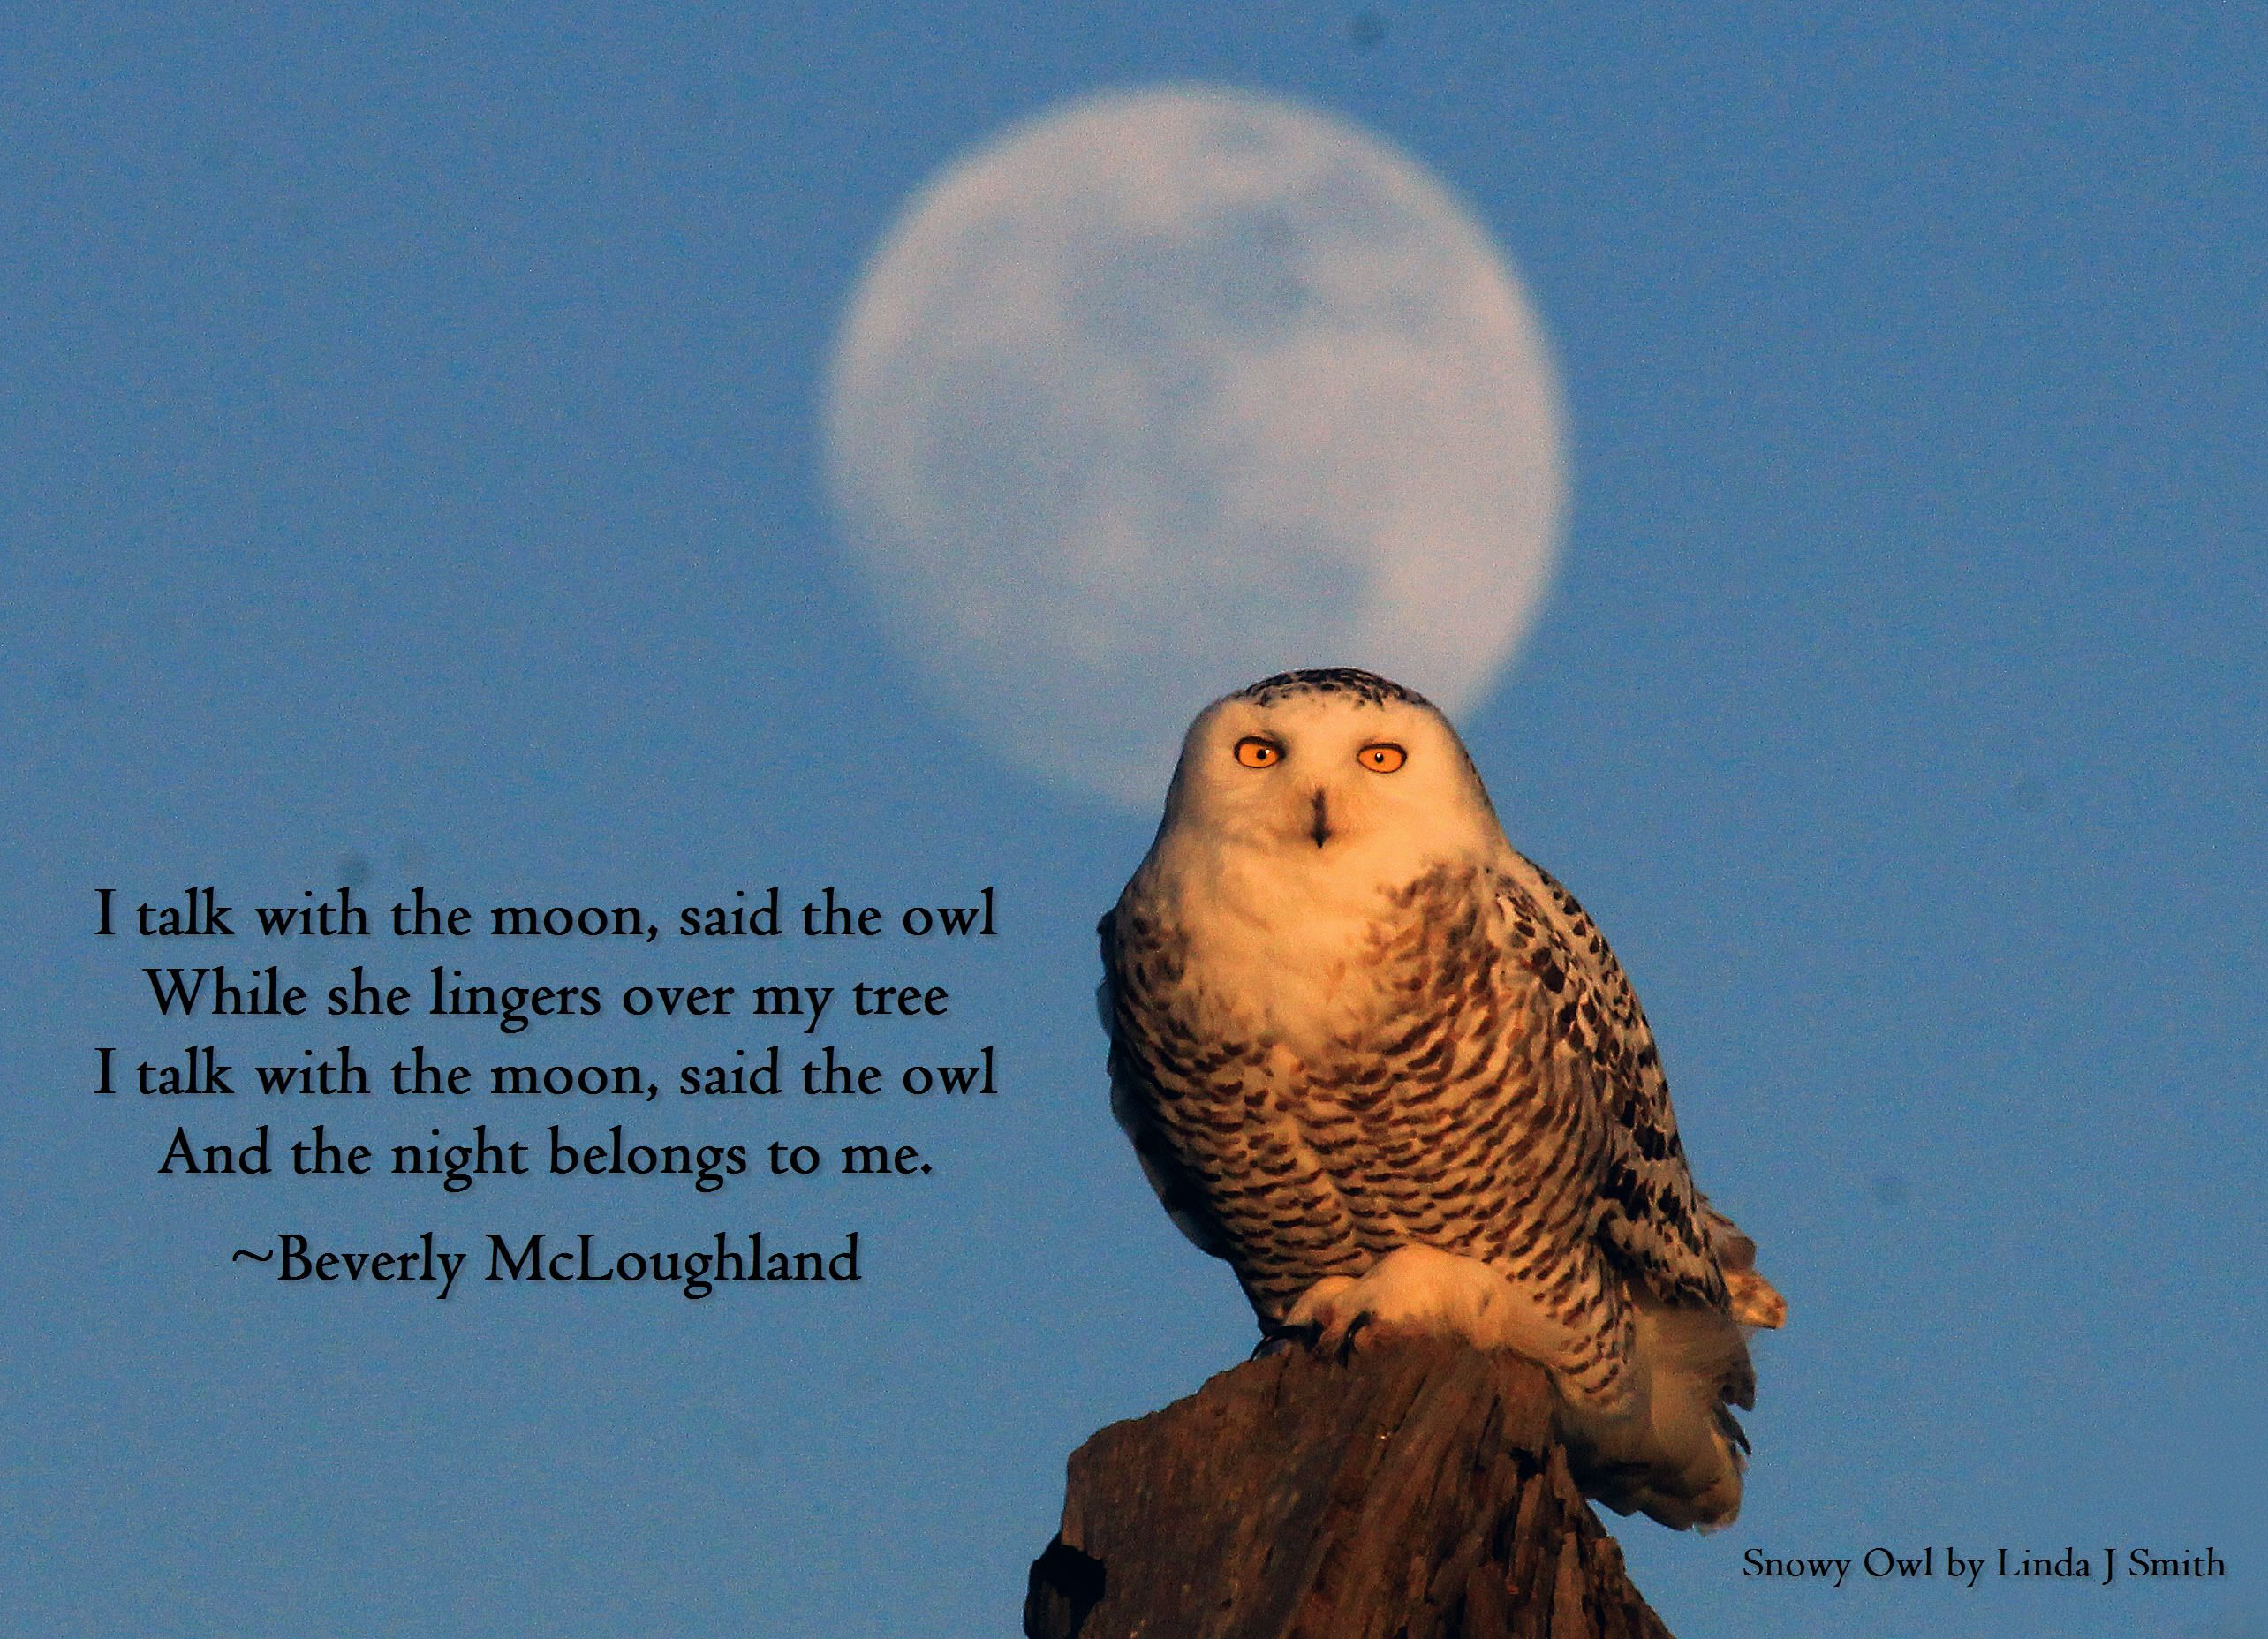 Lovely verse and lovely photo. Photo by Birds & Blooms reader Linda J Smith. Owls are incredible.